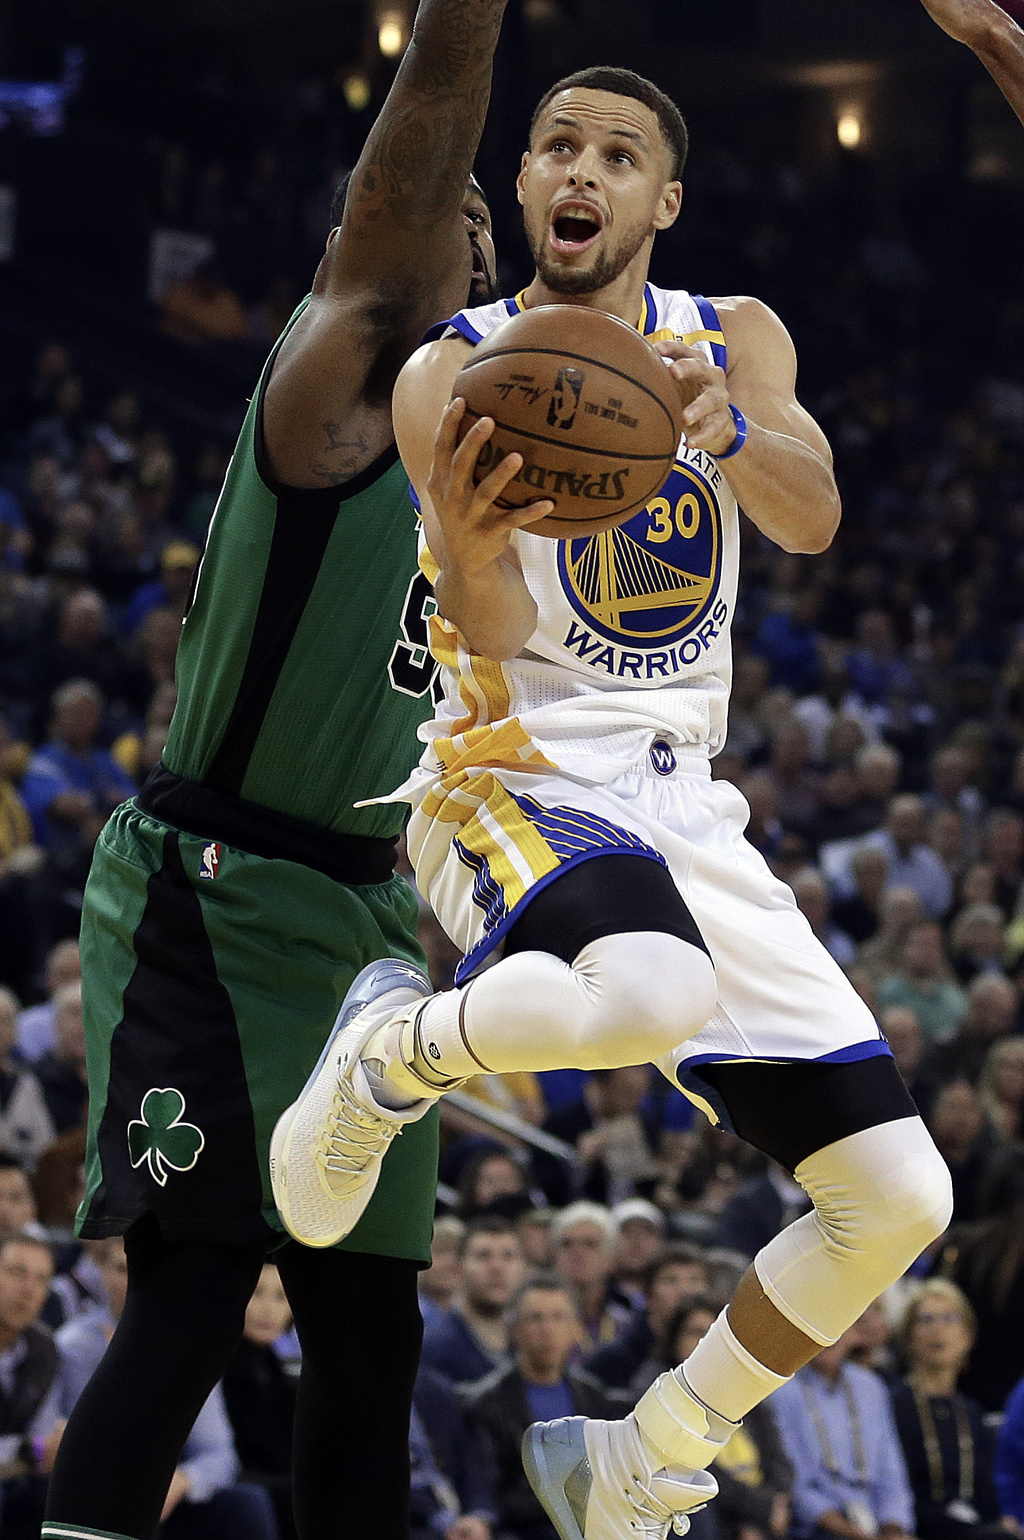 Golden State Warriors' Stephen Curry (30) lays up a shot past Boston Celtics' Amir Johnson during the first half of an NBA basketball g...